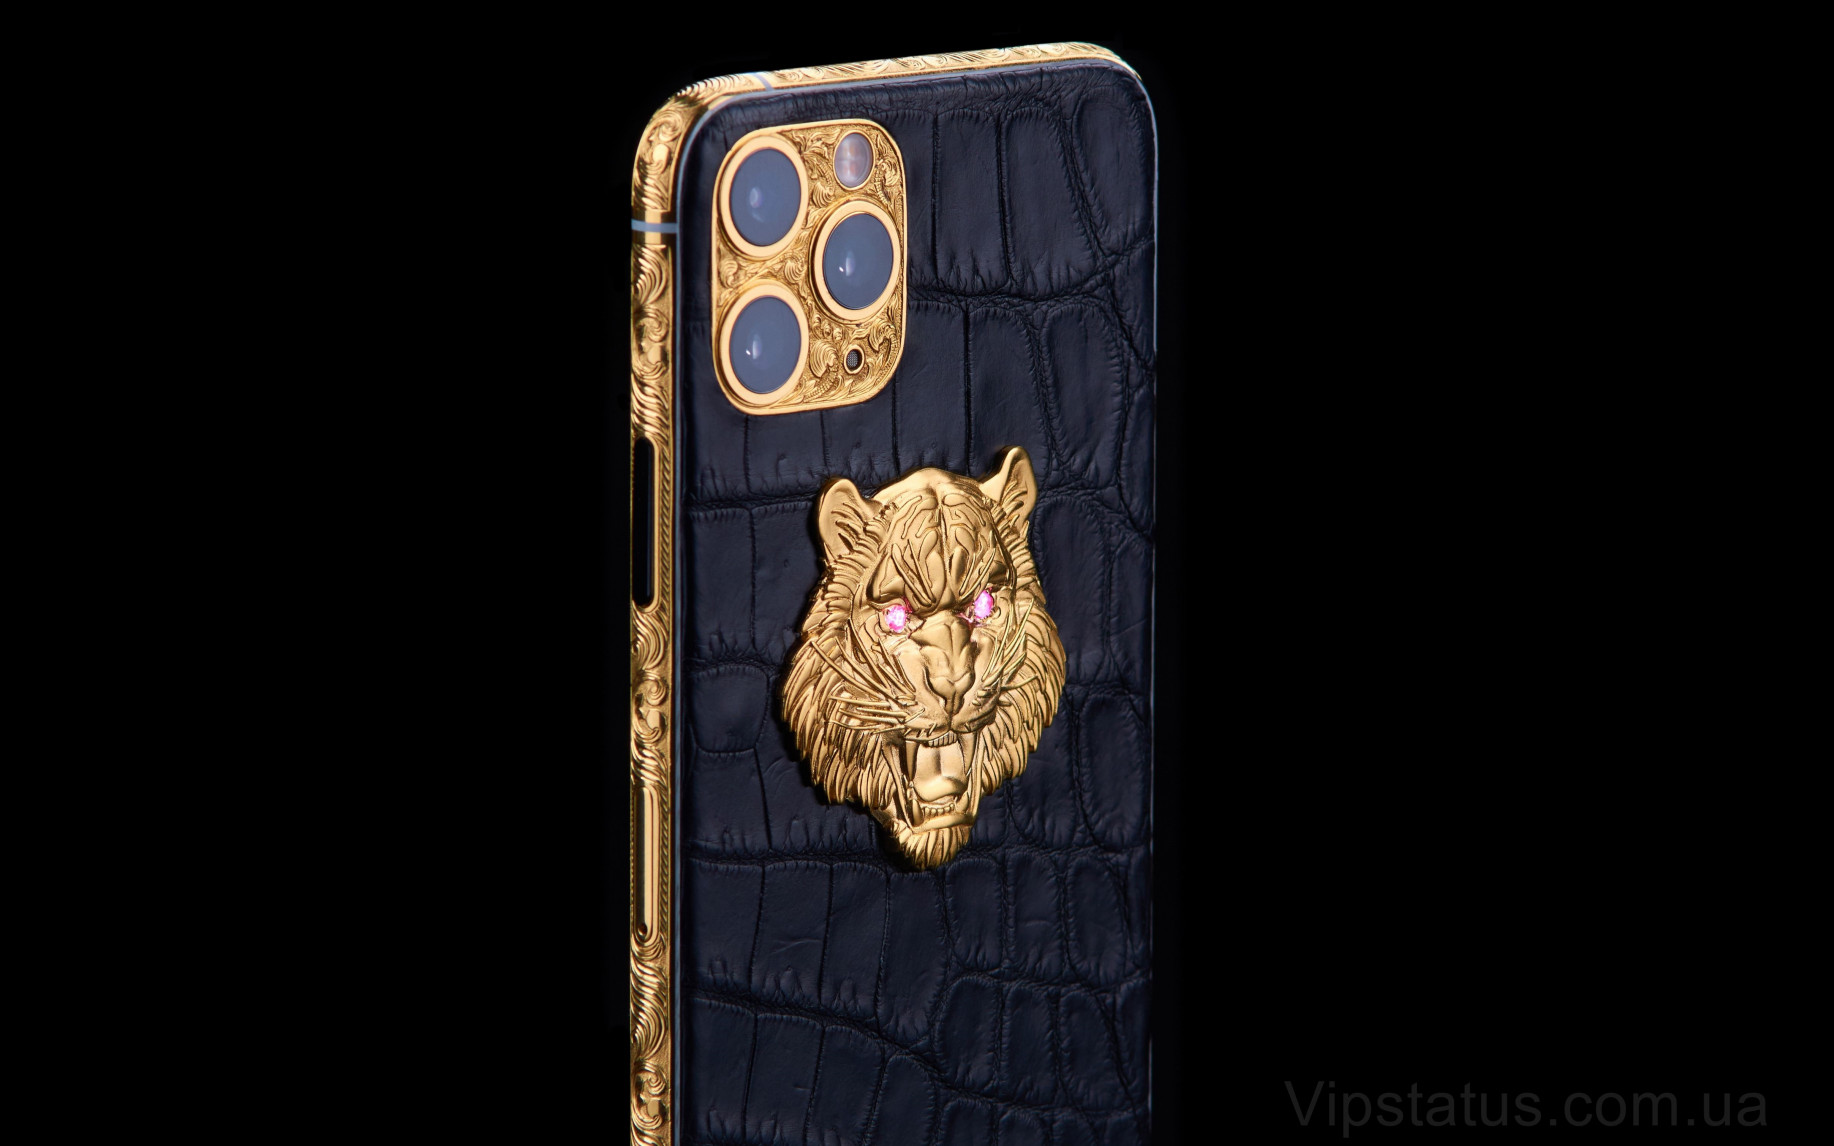 Elite Wild Tiger IPHONE 11 PRO MAX 512 GB Wild Tiger IPHONE 11 PRO MAX 512 GB image 2